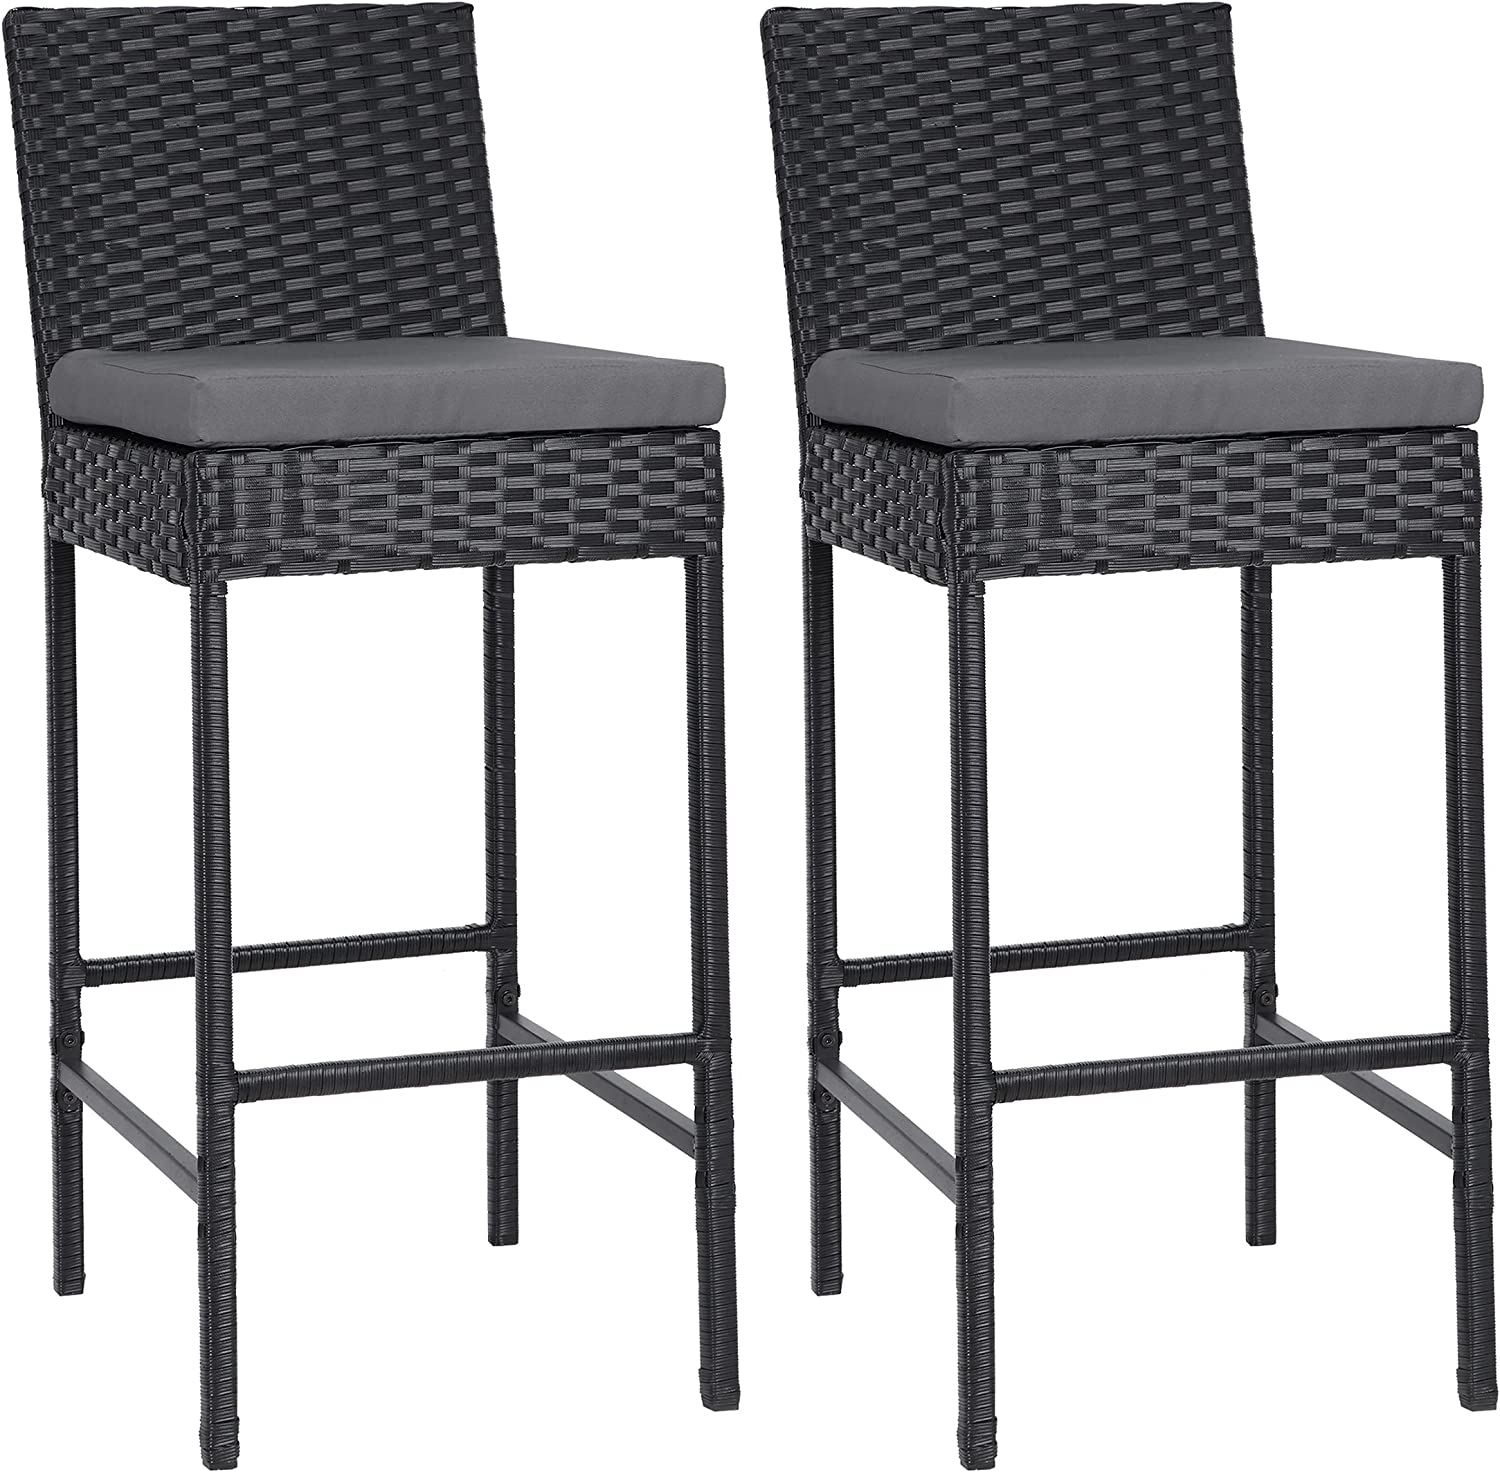 lafuria 2 Packs Wicker Barstools Outdoor Patio Rattan Furniture with 2 Cushions for Lawn Balcony Garden Black